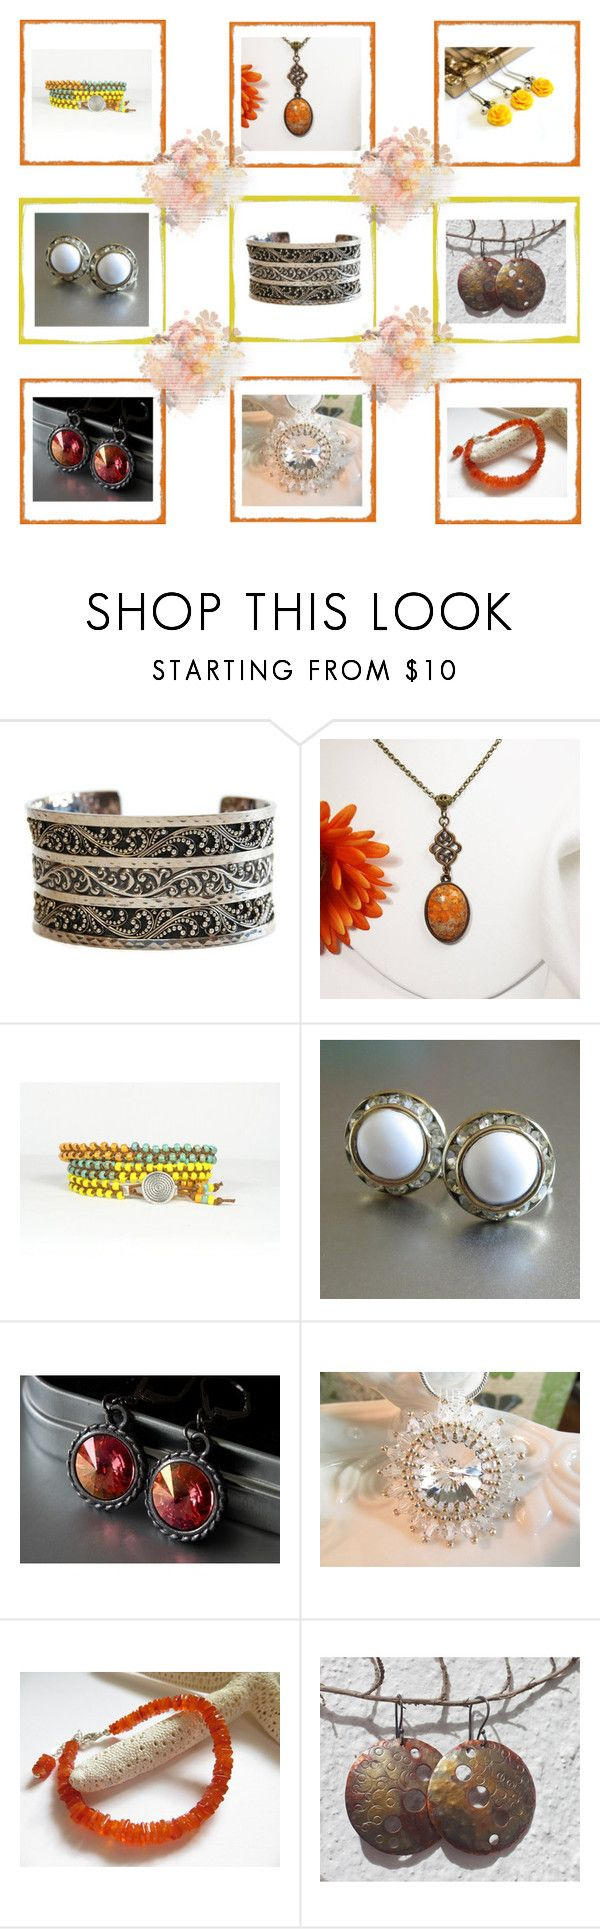 """""""For Her"""" by keepsakedesignbycmm ❤ liked on Polyvore featuring Lois Hill, jewelry, accessories and gifts"""